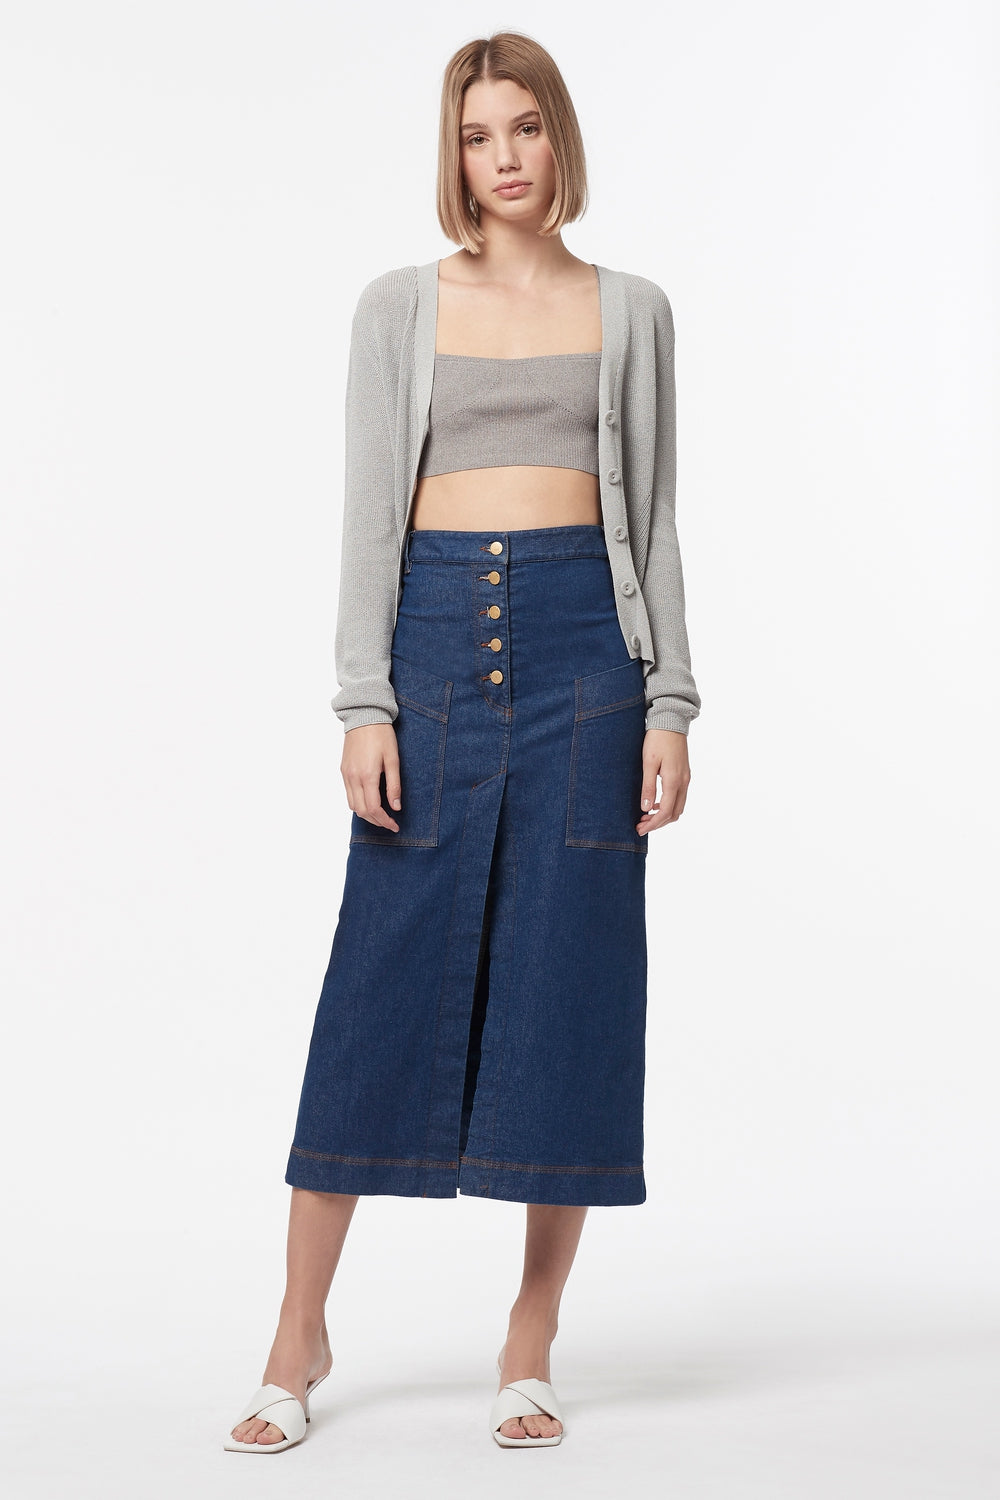 FADED GLORY DENIM MIDI SKIRT